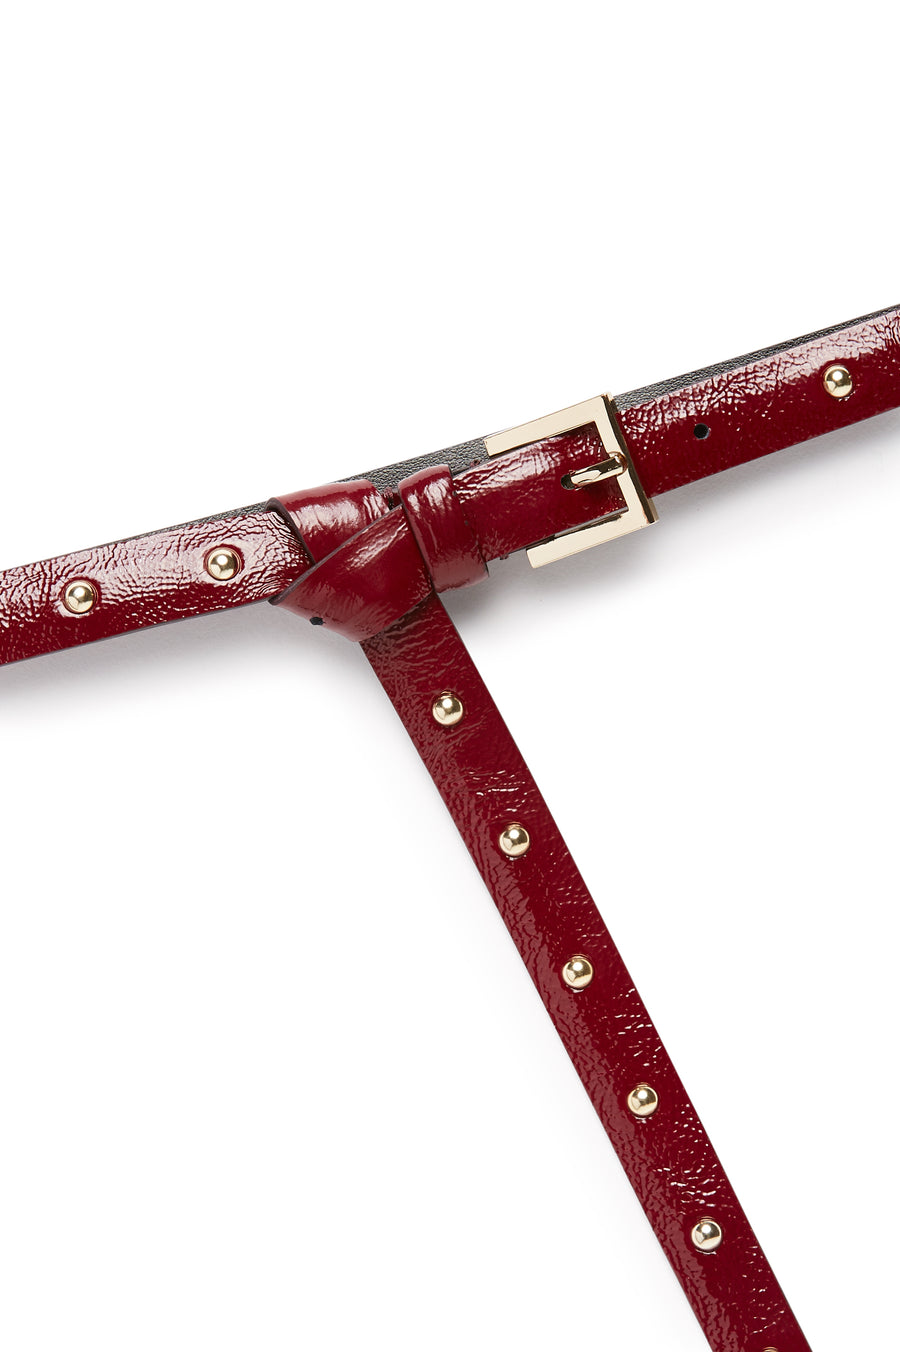 Studded Leather Belt, High Waist, made in Italy. Band width of 1.5cm. Buckle fastening and gold studs. Color Red Bordeaux